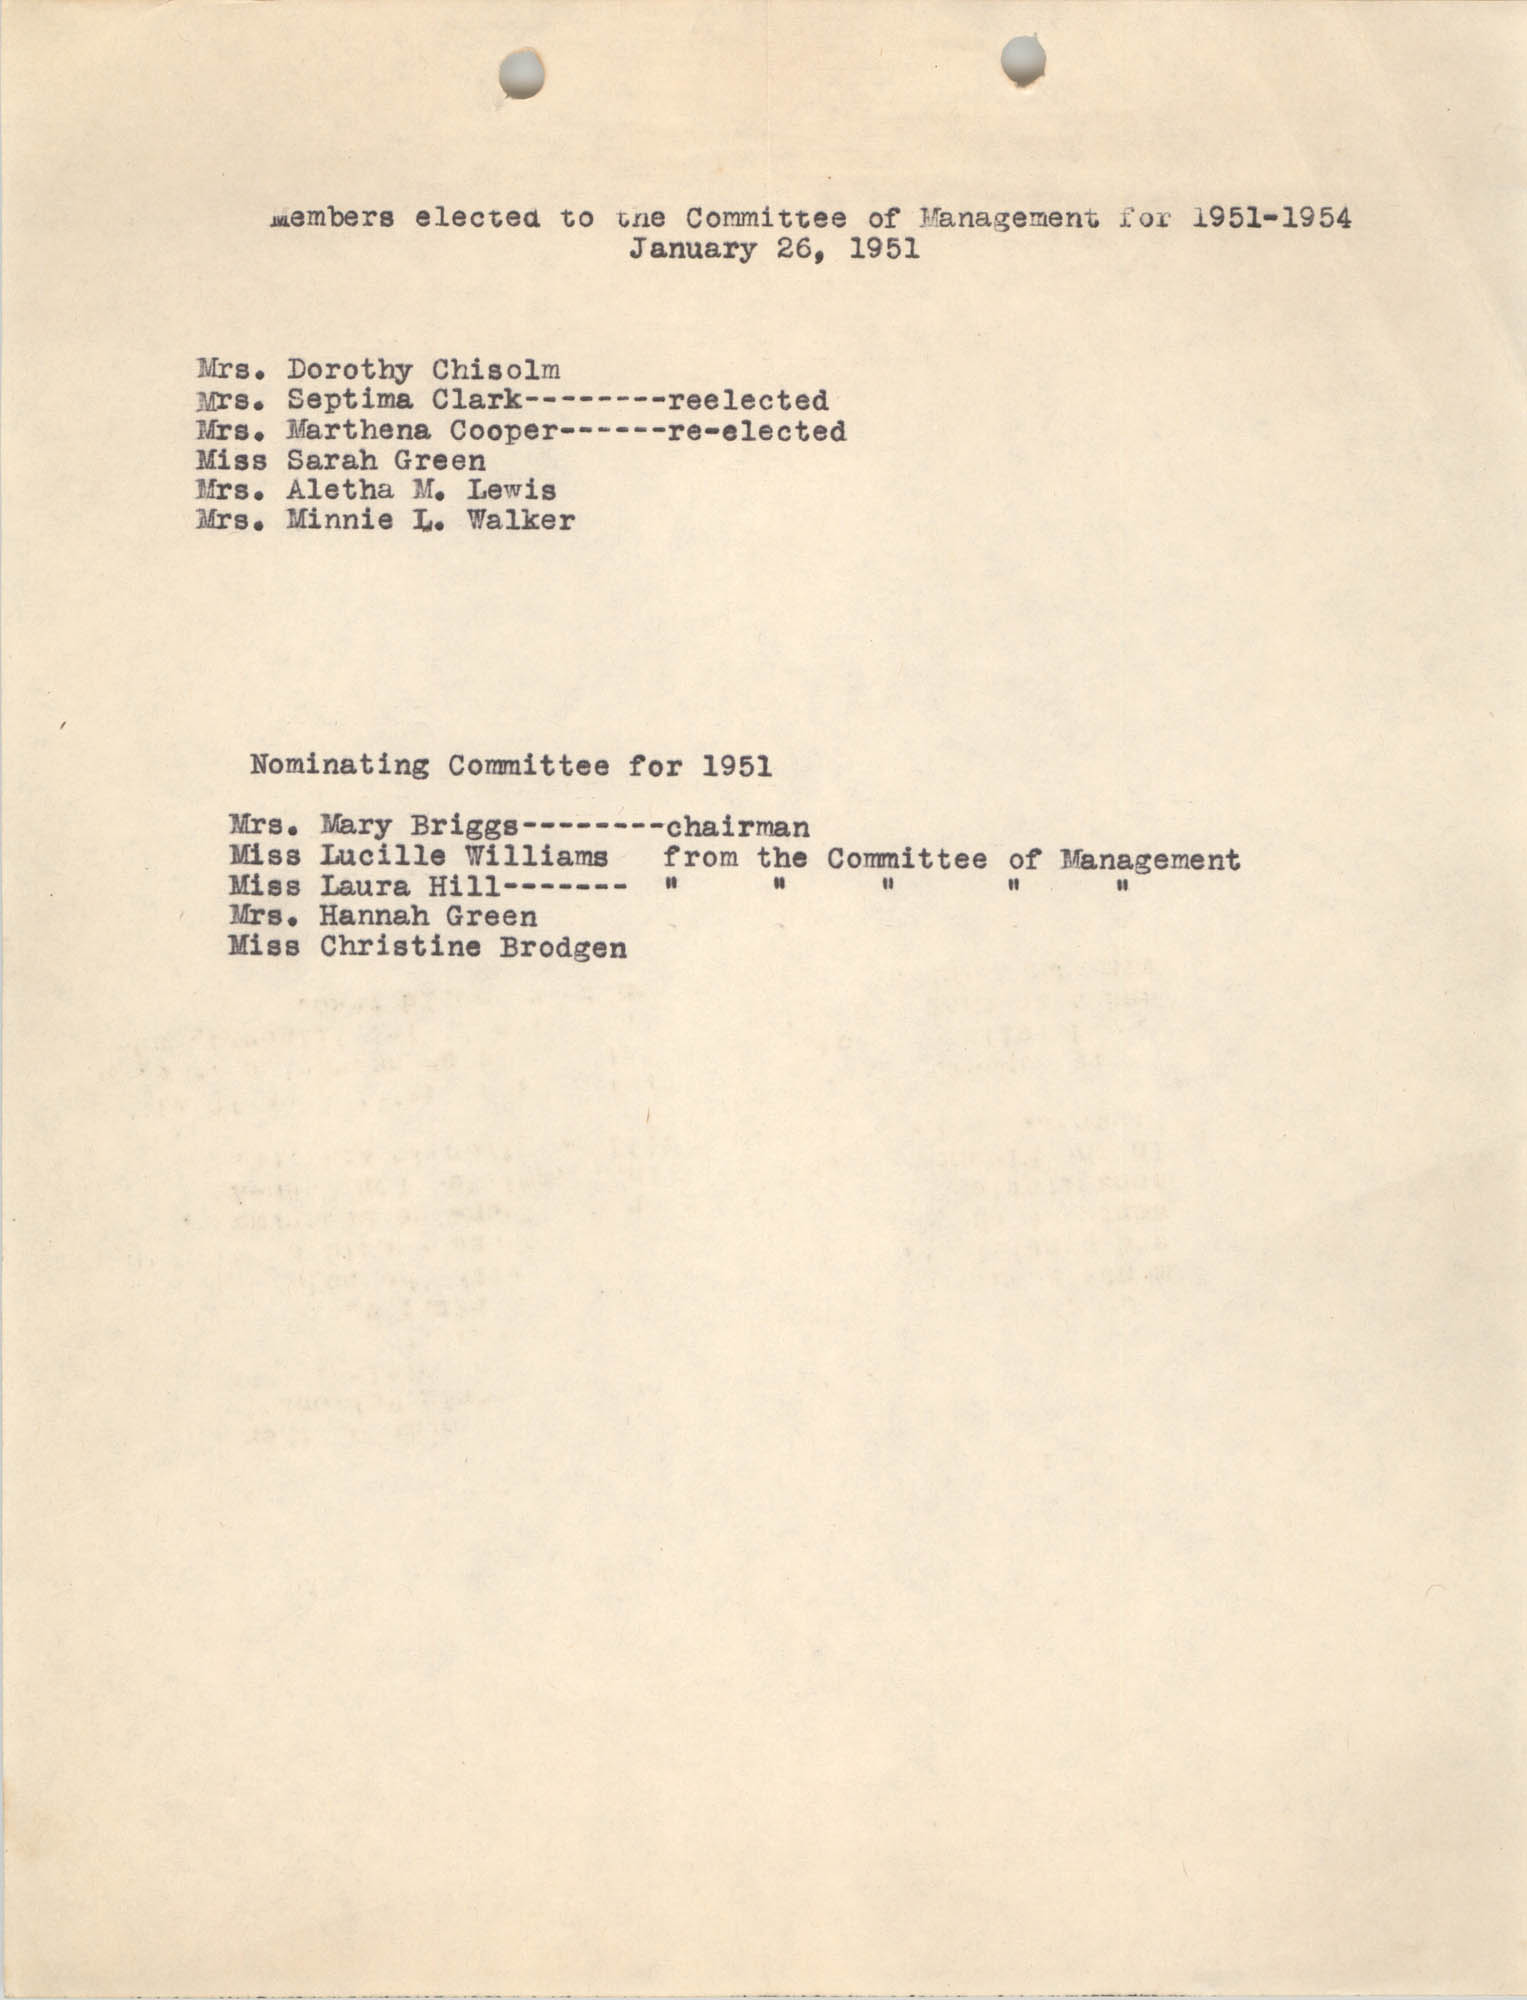 Y.W.C.A. Members Elected to Committee of Management and Nominating Committee, 1951